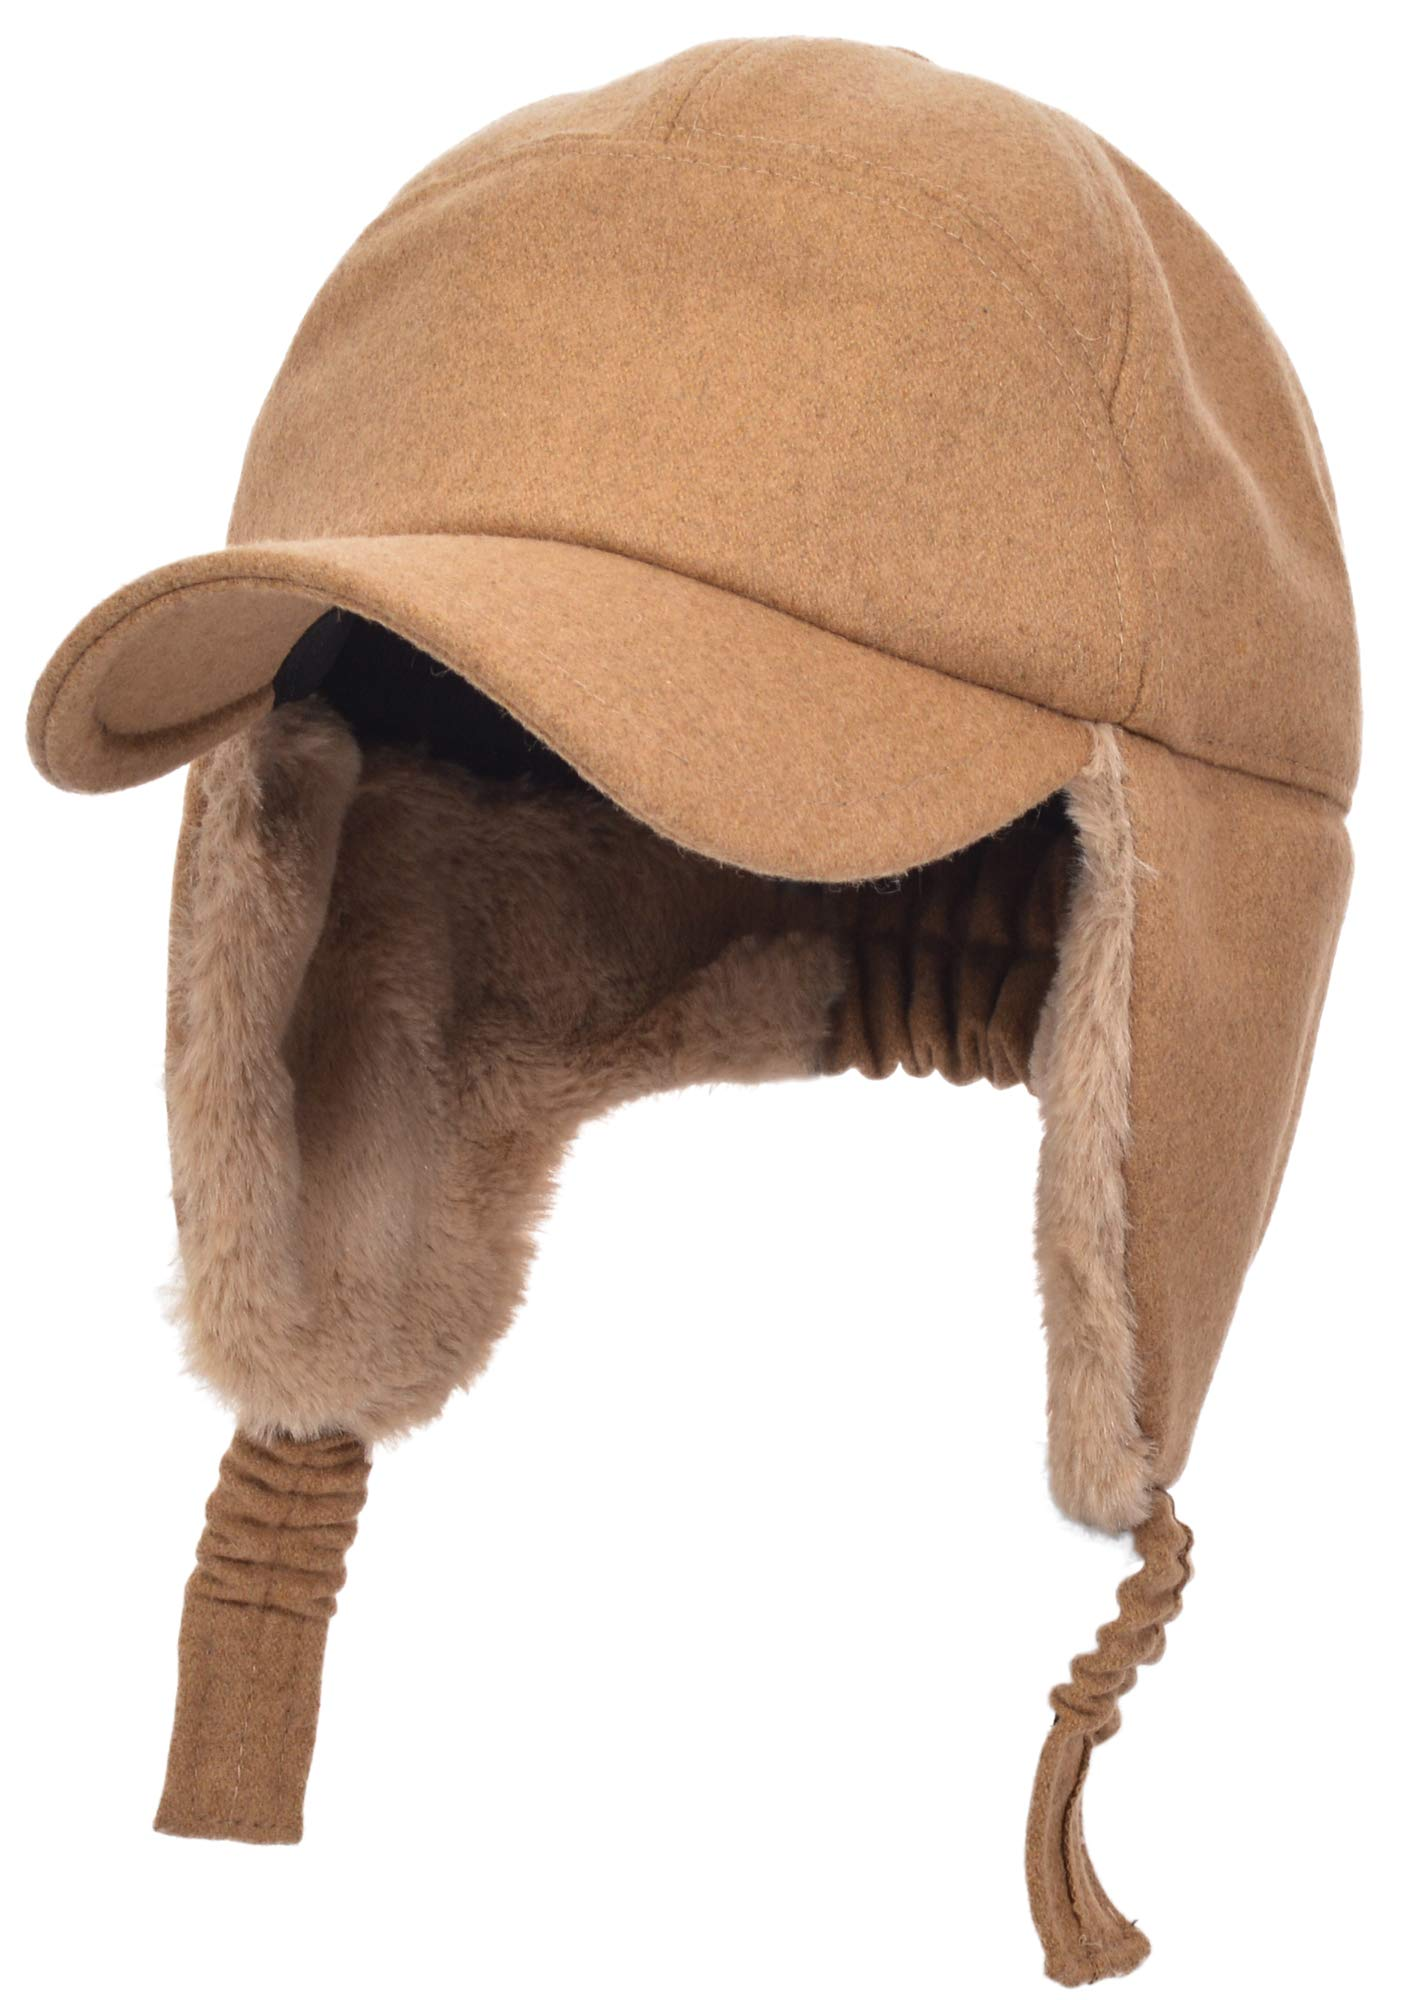 Womens Mens Winter Warm Premium Wool Woolen Peaked Baseball Cap With Faux Fur Fold Earmuffs Earflap Windproof Hat Visor Cap, Multicolor (Khaki)